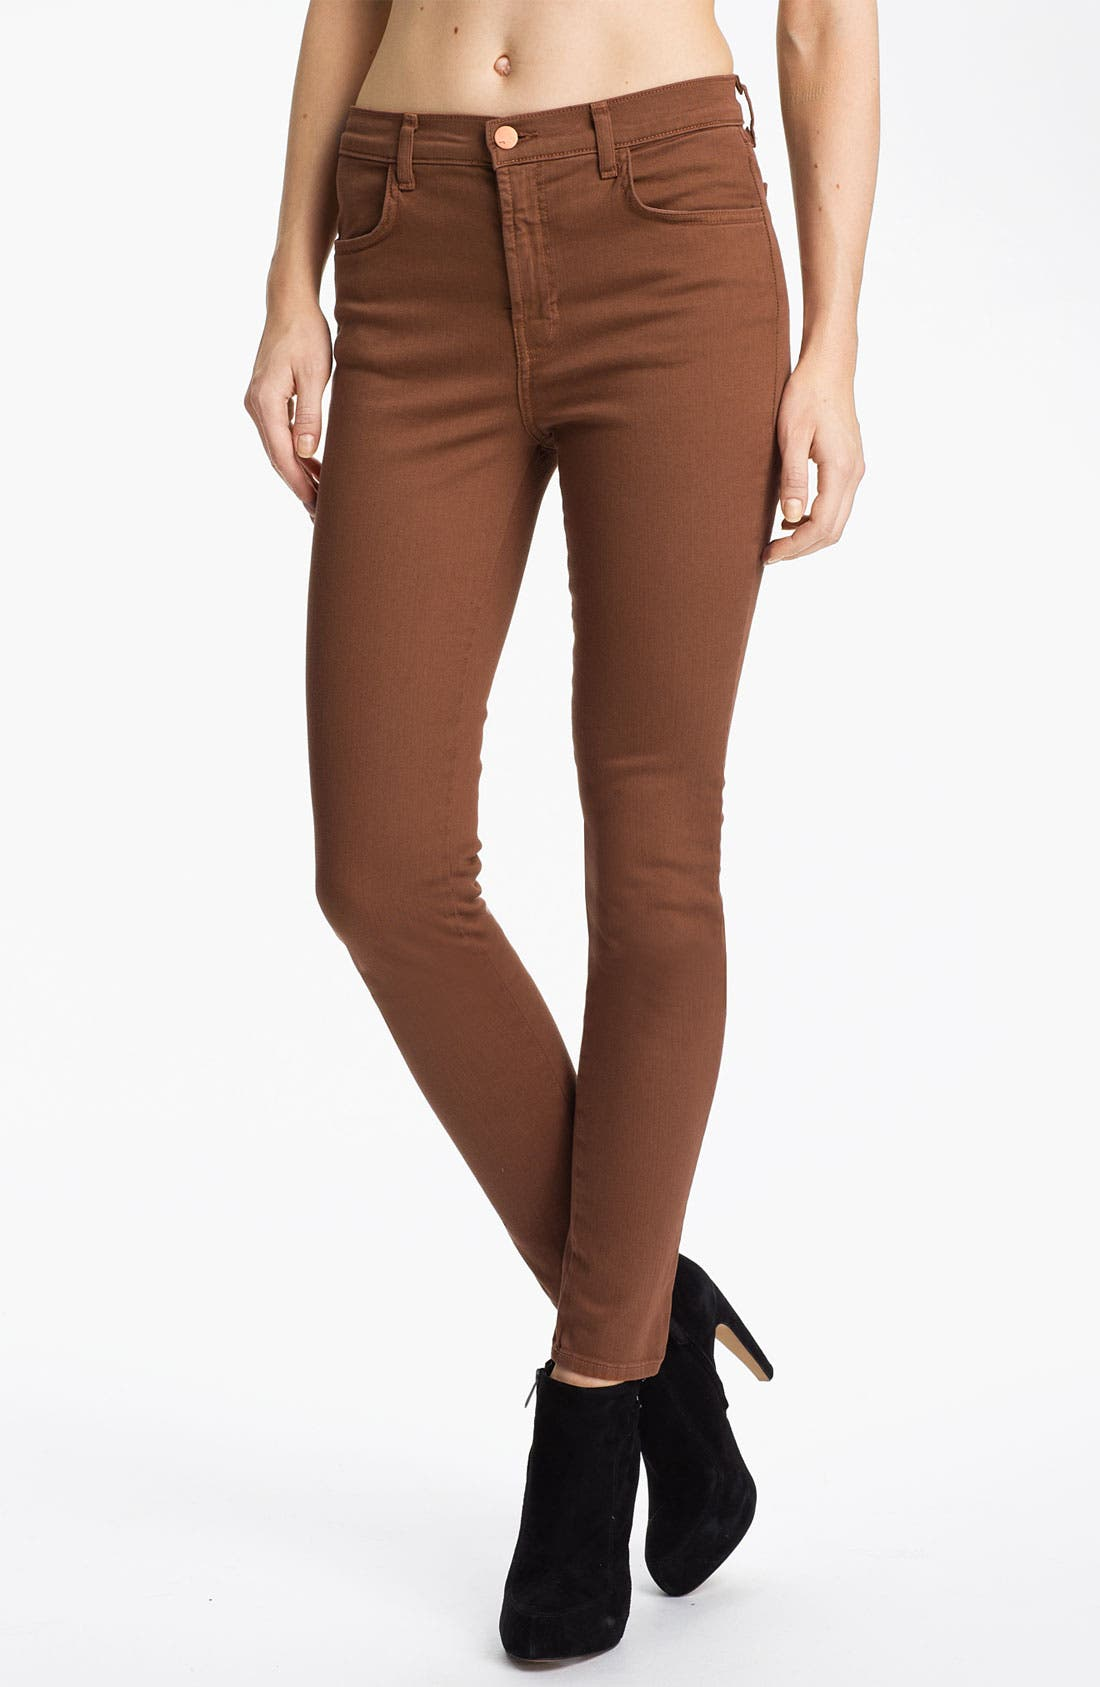 Alternate Image 1 Selected - J Brand 'Maria' High Rise Skinny Stretch Jeans (Bourbon)